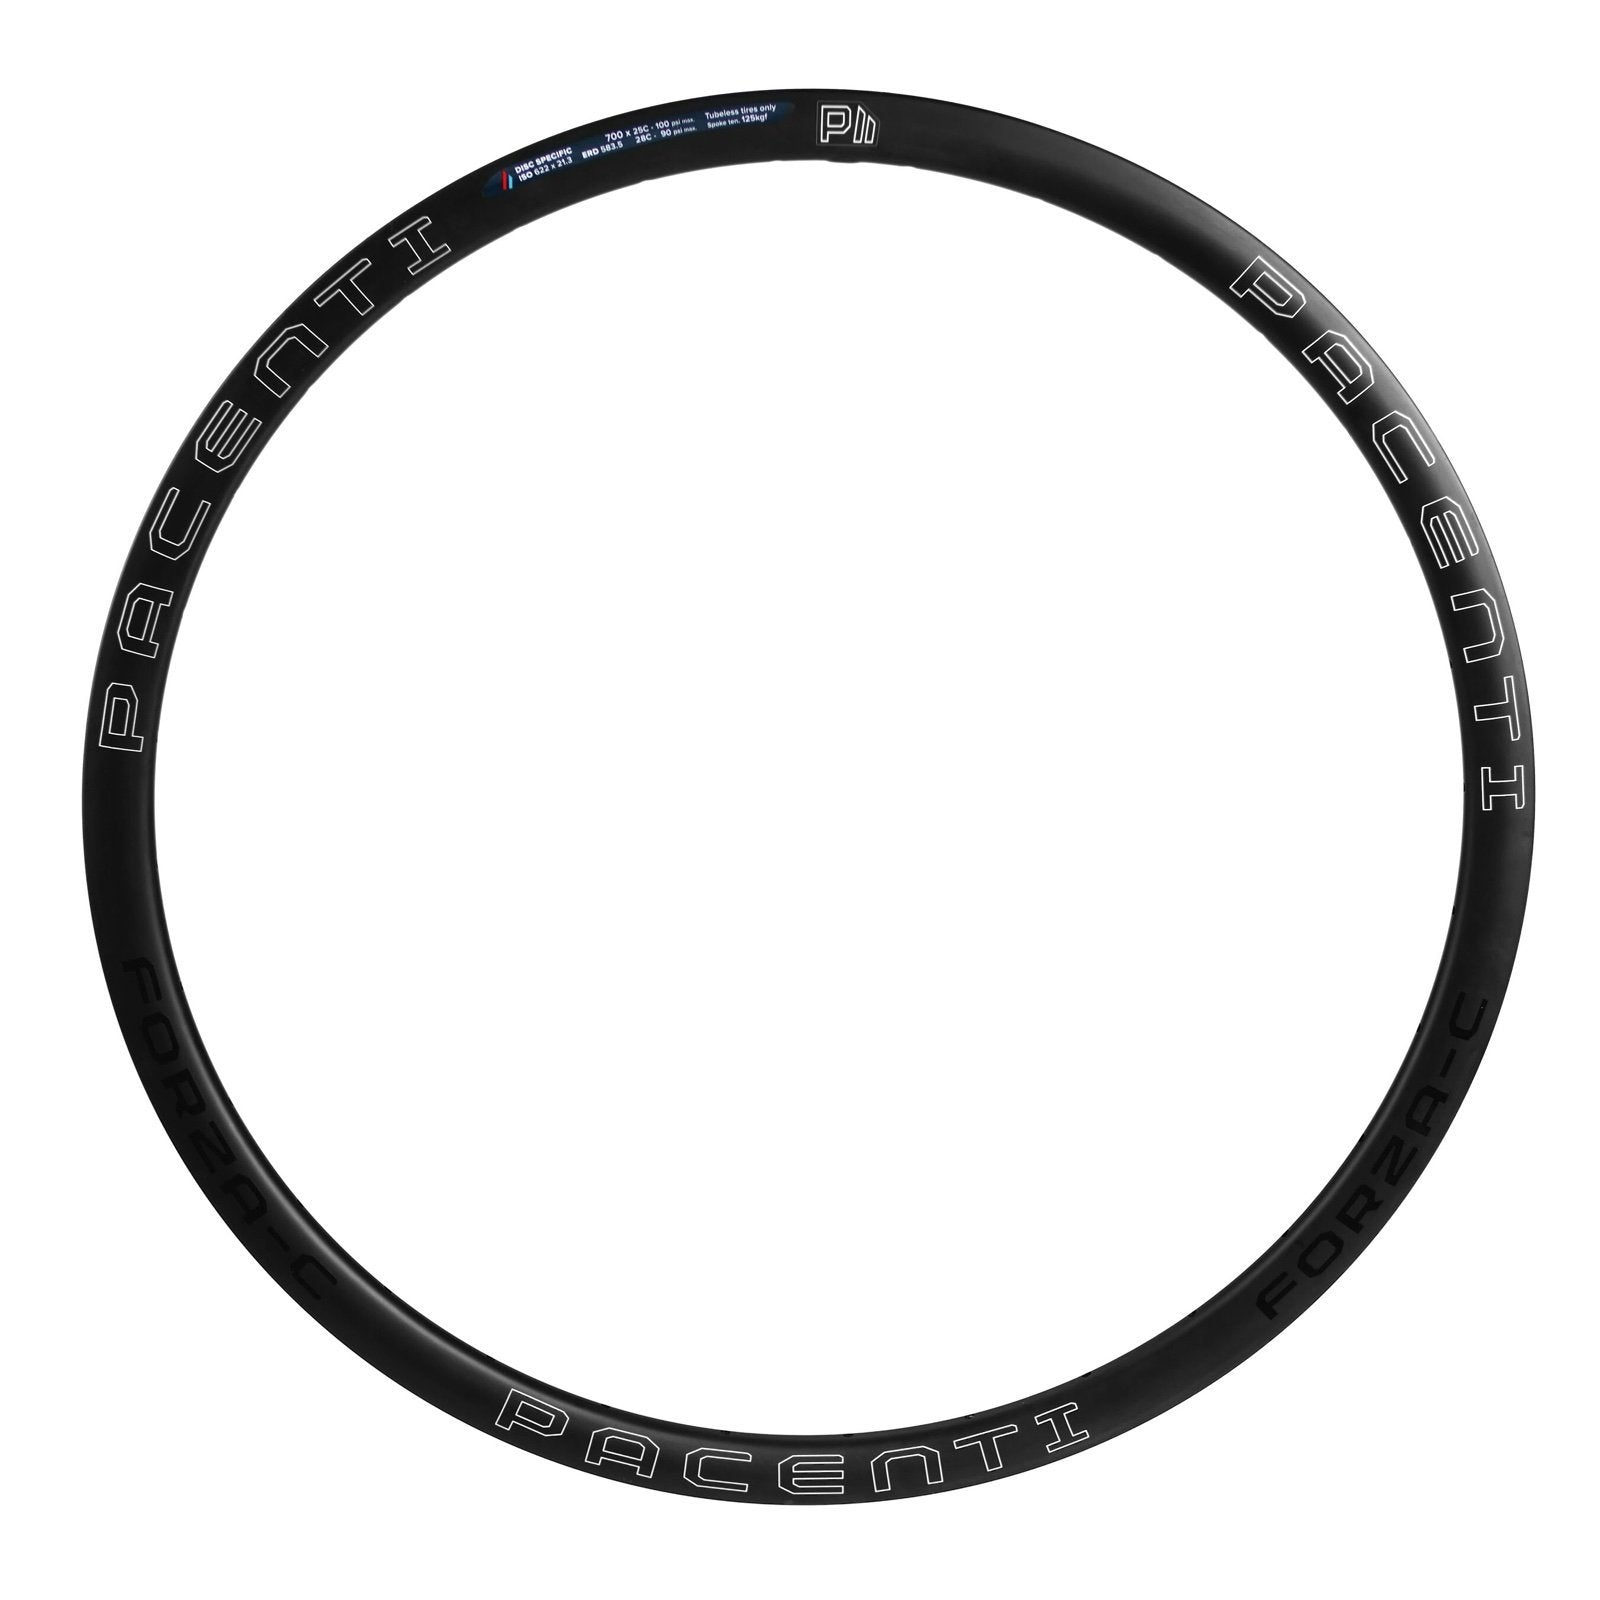 Forza-C 30mm rim white disc clincher 700c Asymmetric